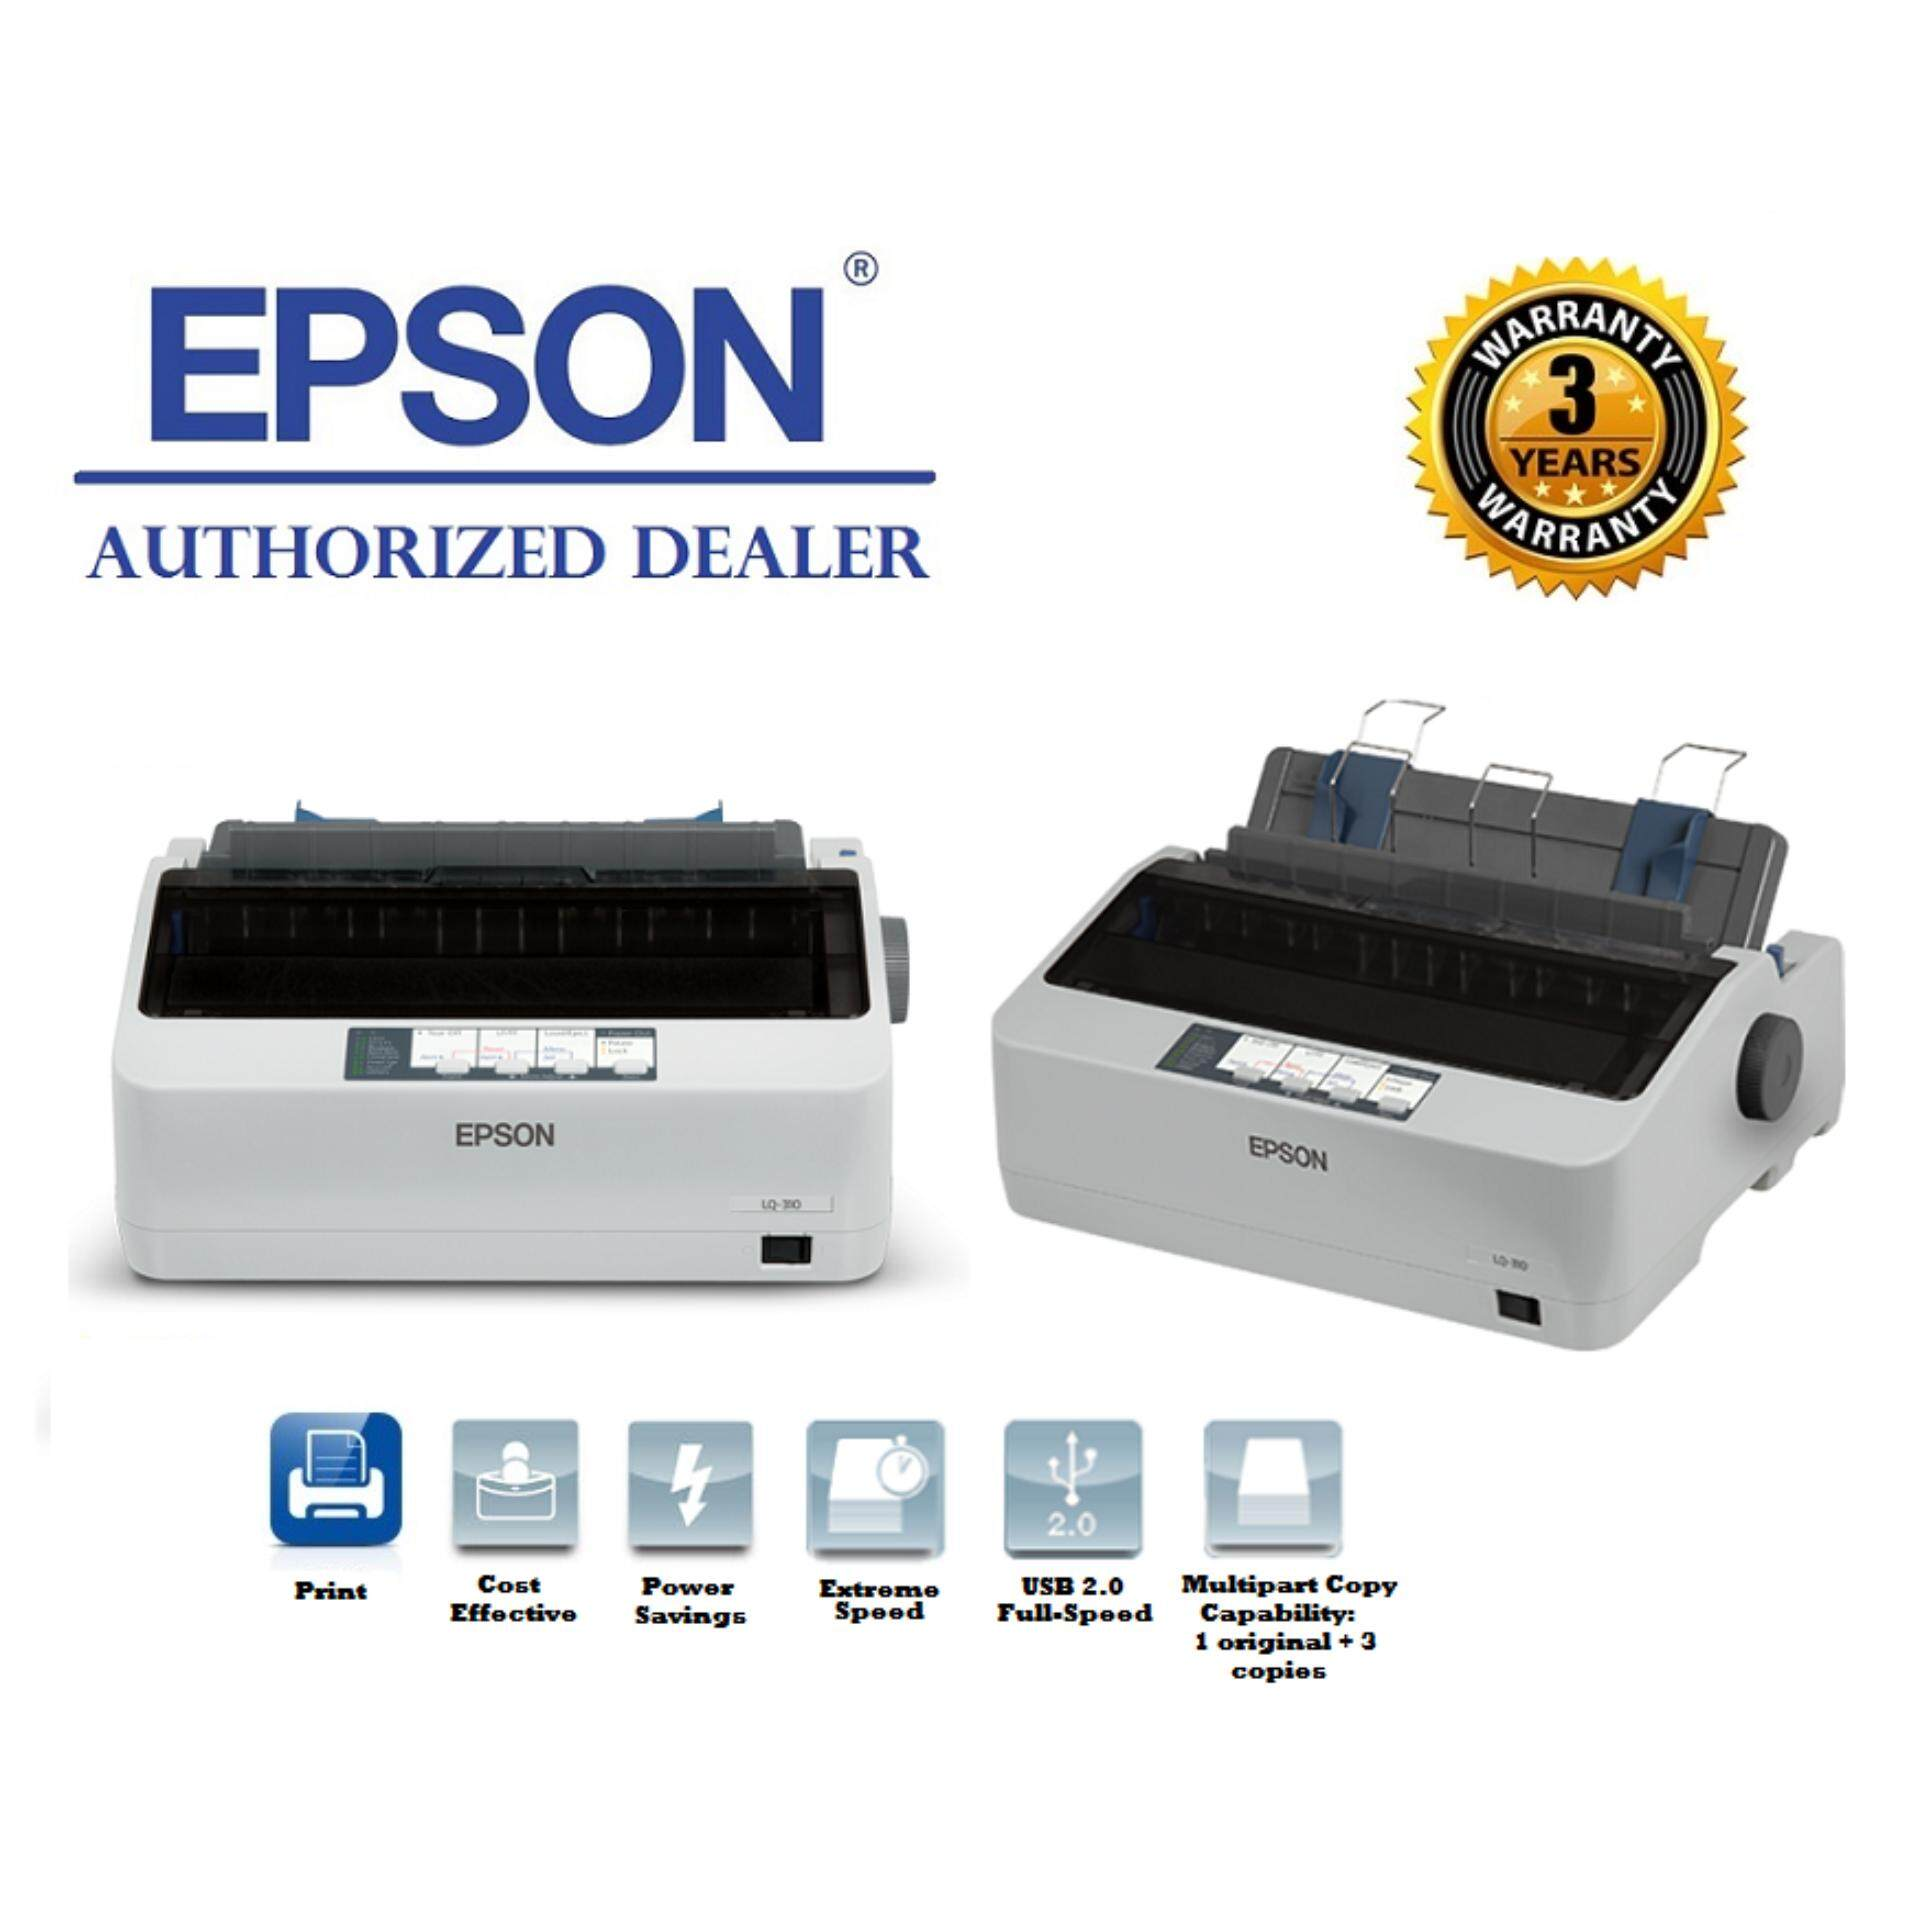 GENUINE EPSON LQ-310/LQ310 DOT MATRIX PRINTER WITH 24-PIN NARROW CARRIAGE IMPACT